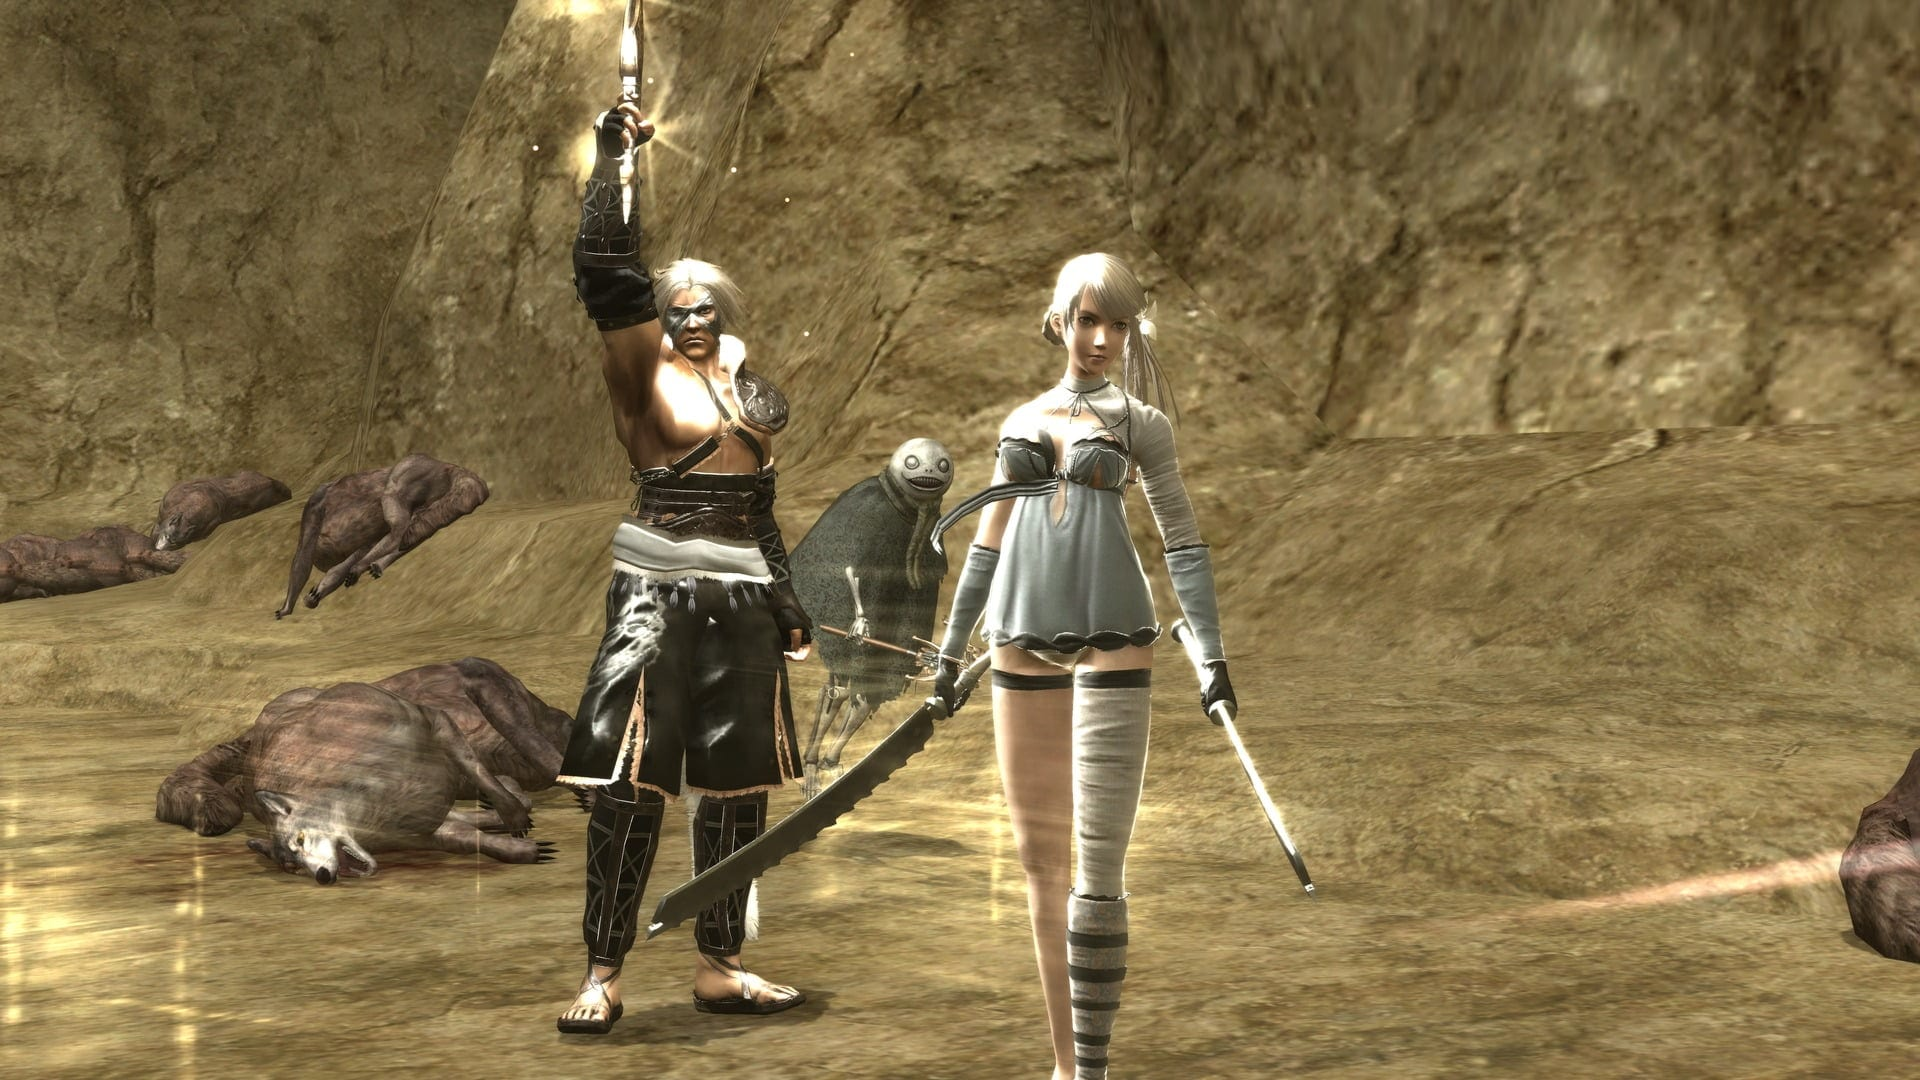 RPCS3 developers managed to overcome 30 fps in NieR games.